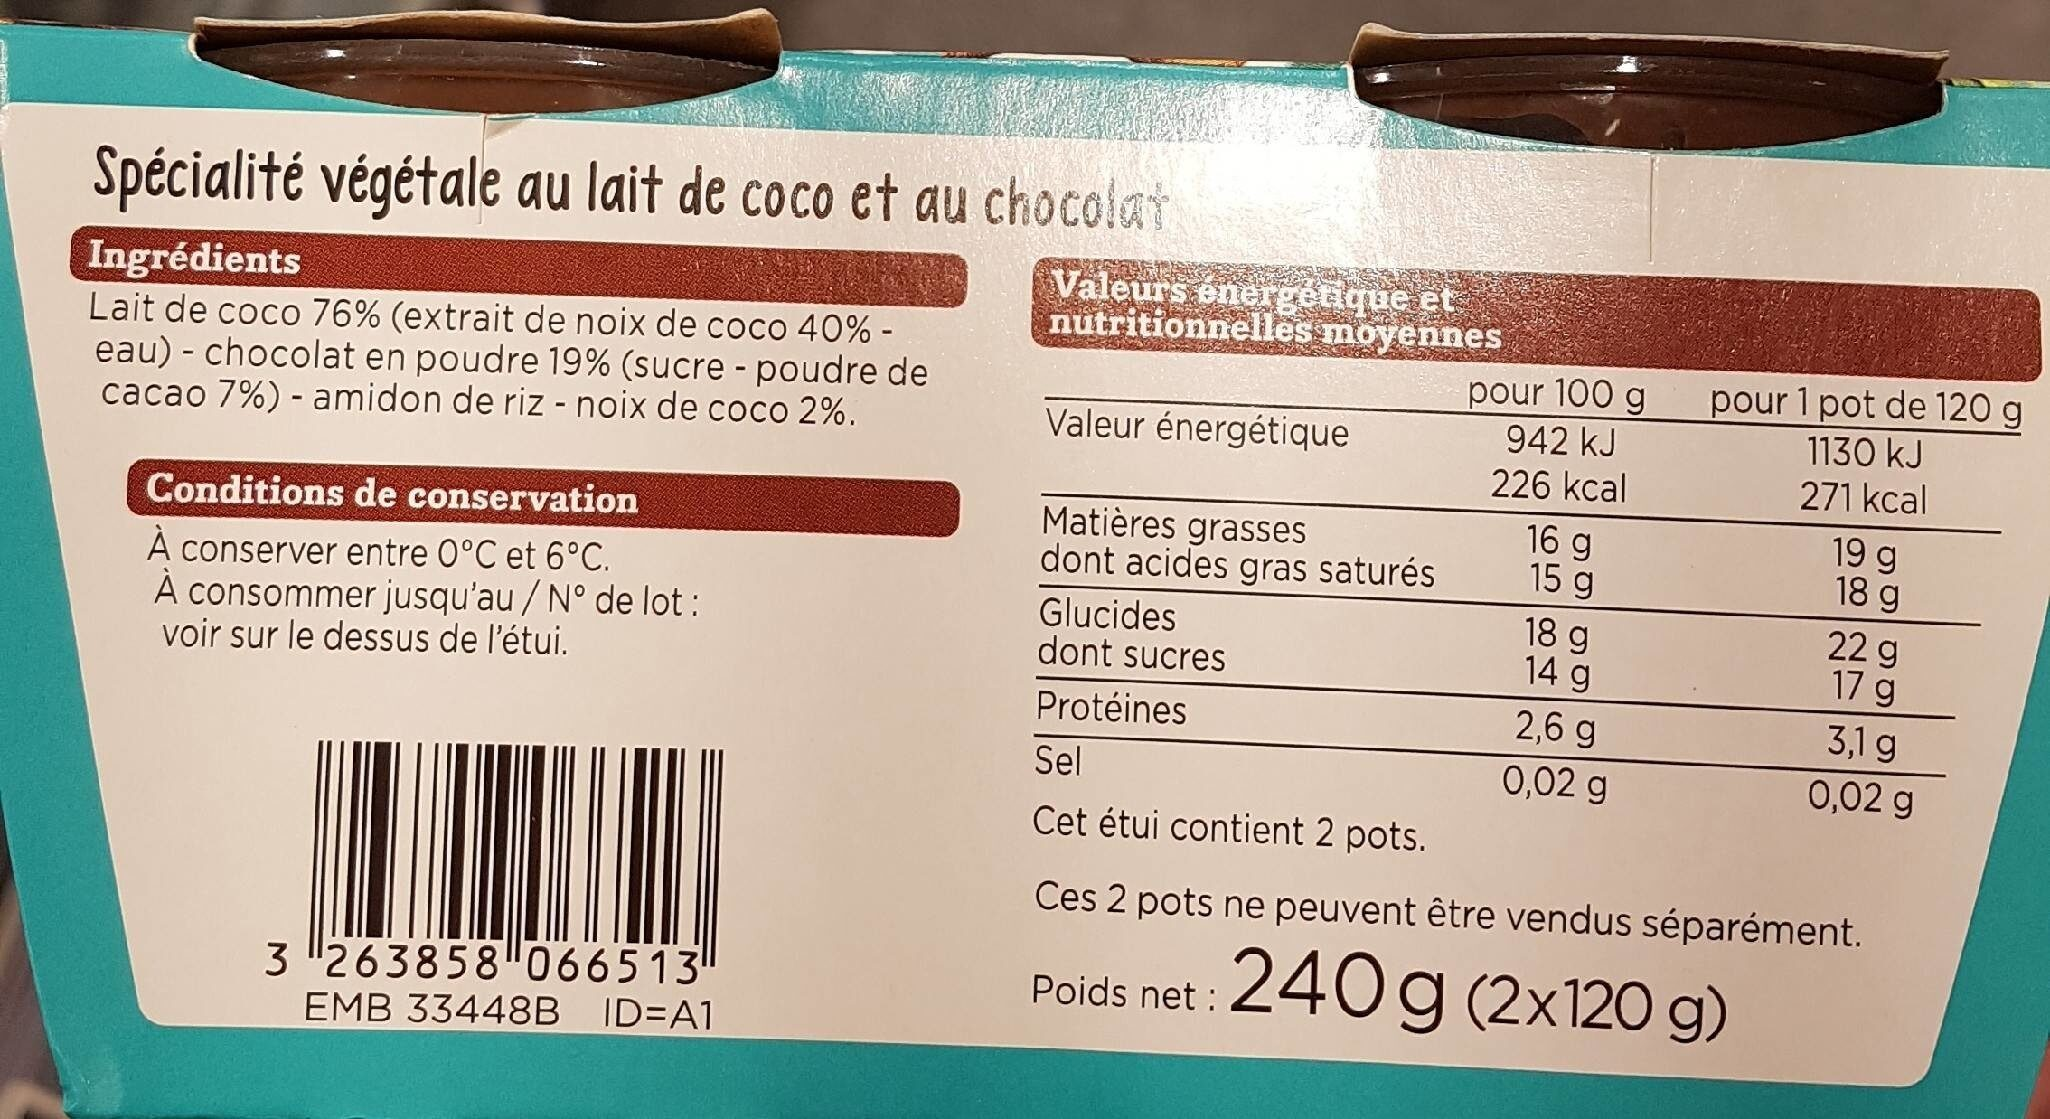 Coco chocolat - Informations nutritionnelles